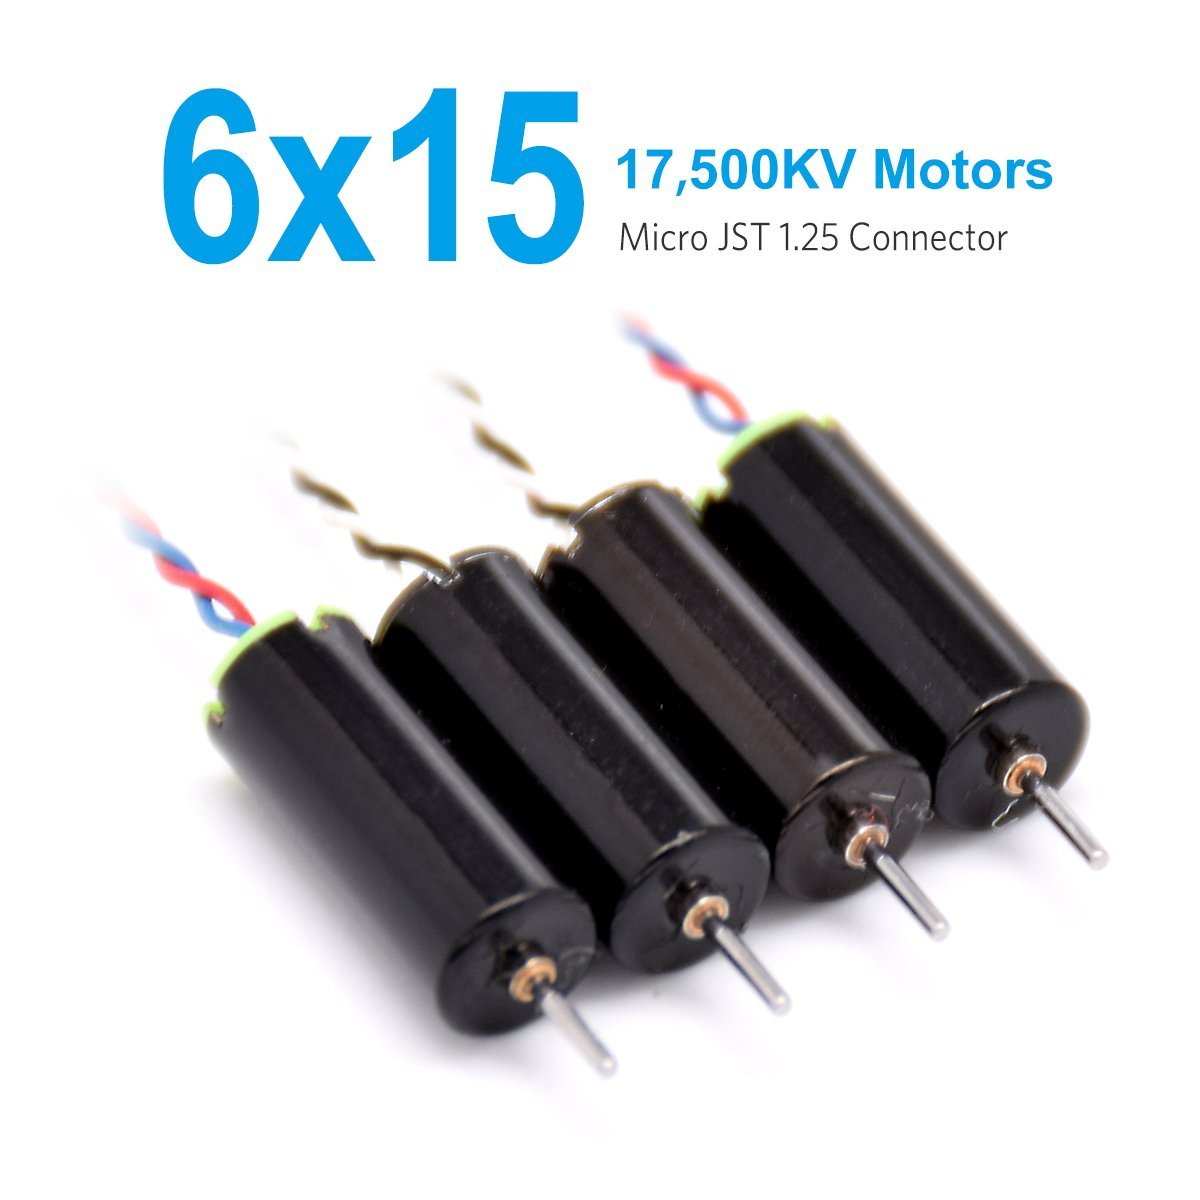 BETAFPV 4pcs of 6x15mm Motor (Speed: Faster) 17500KV TW Sauce Edition Black with Micro JST 1.25 Plug